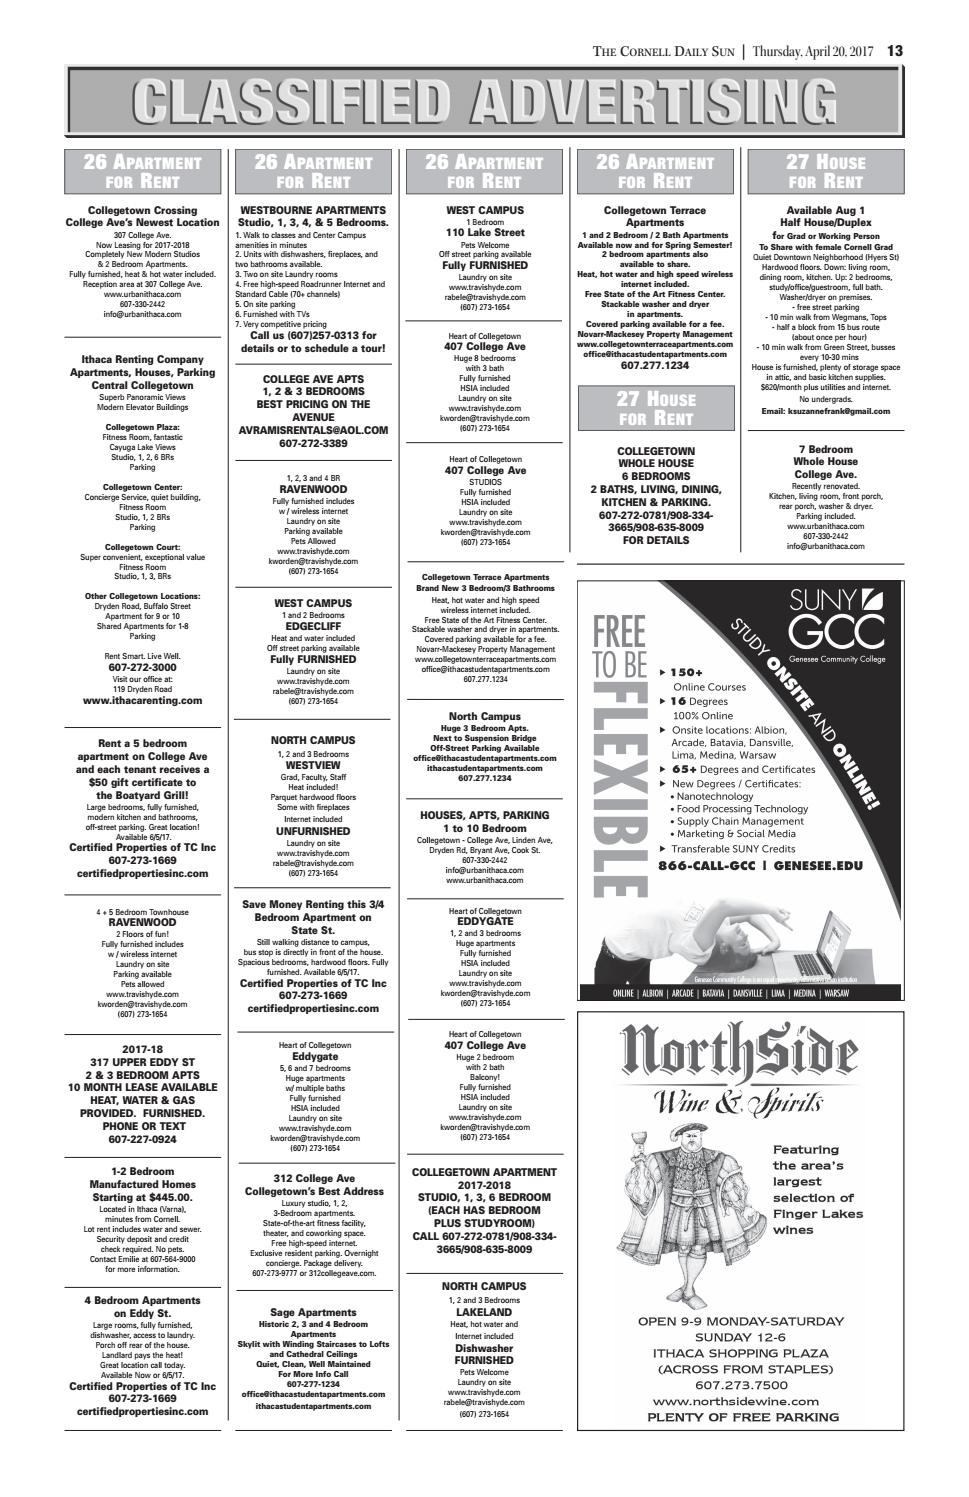 04 20 17 entire issue hi res by The Cornell Daily Sun - issuu